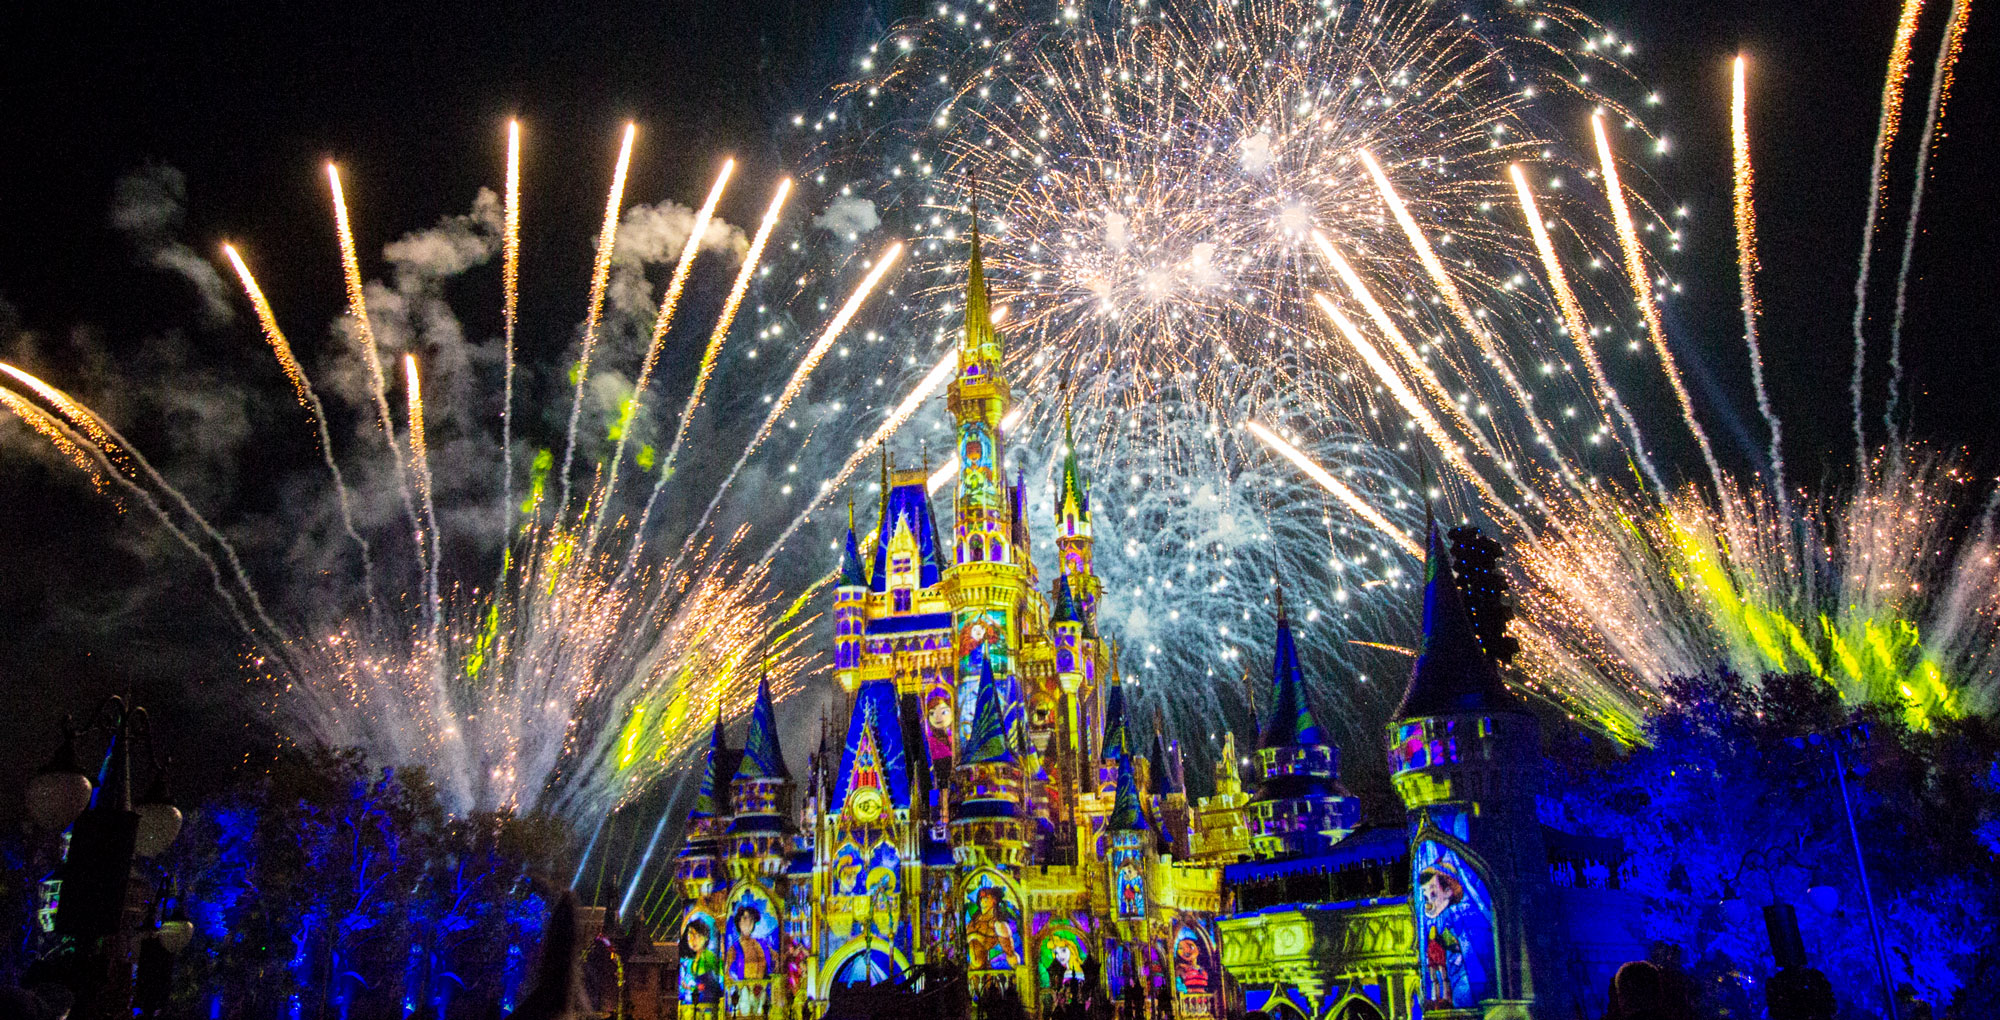 Happily Ever After finale at the Magic Kingdom.